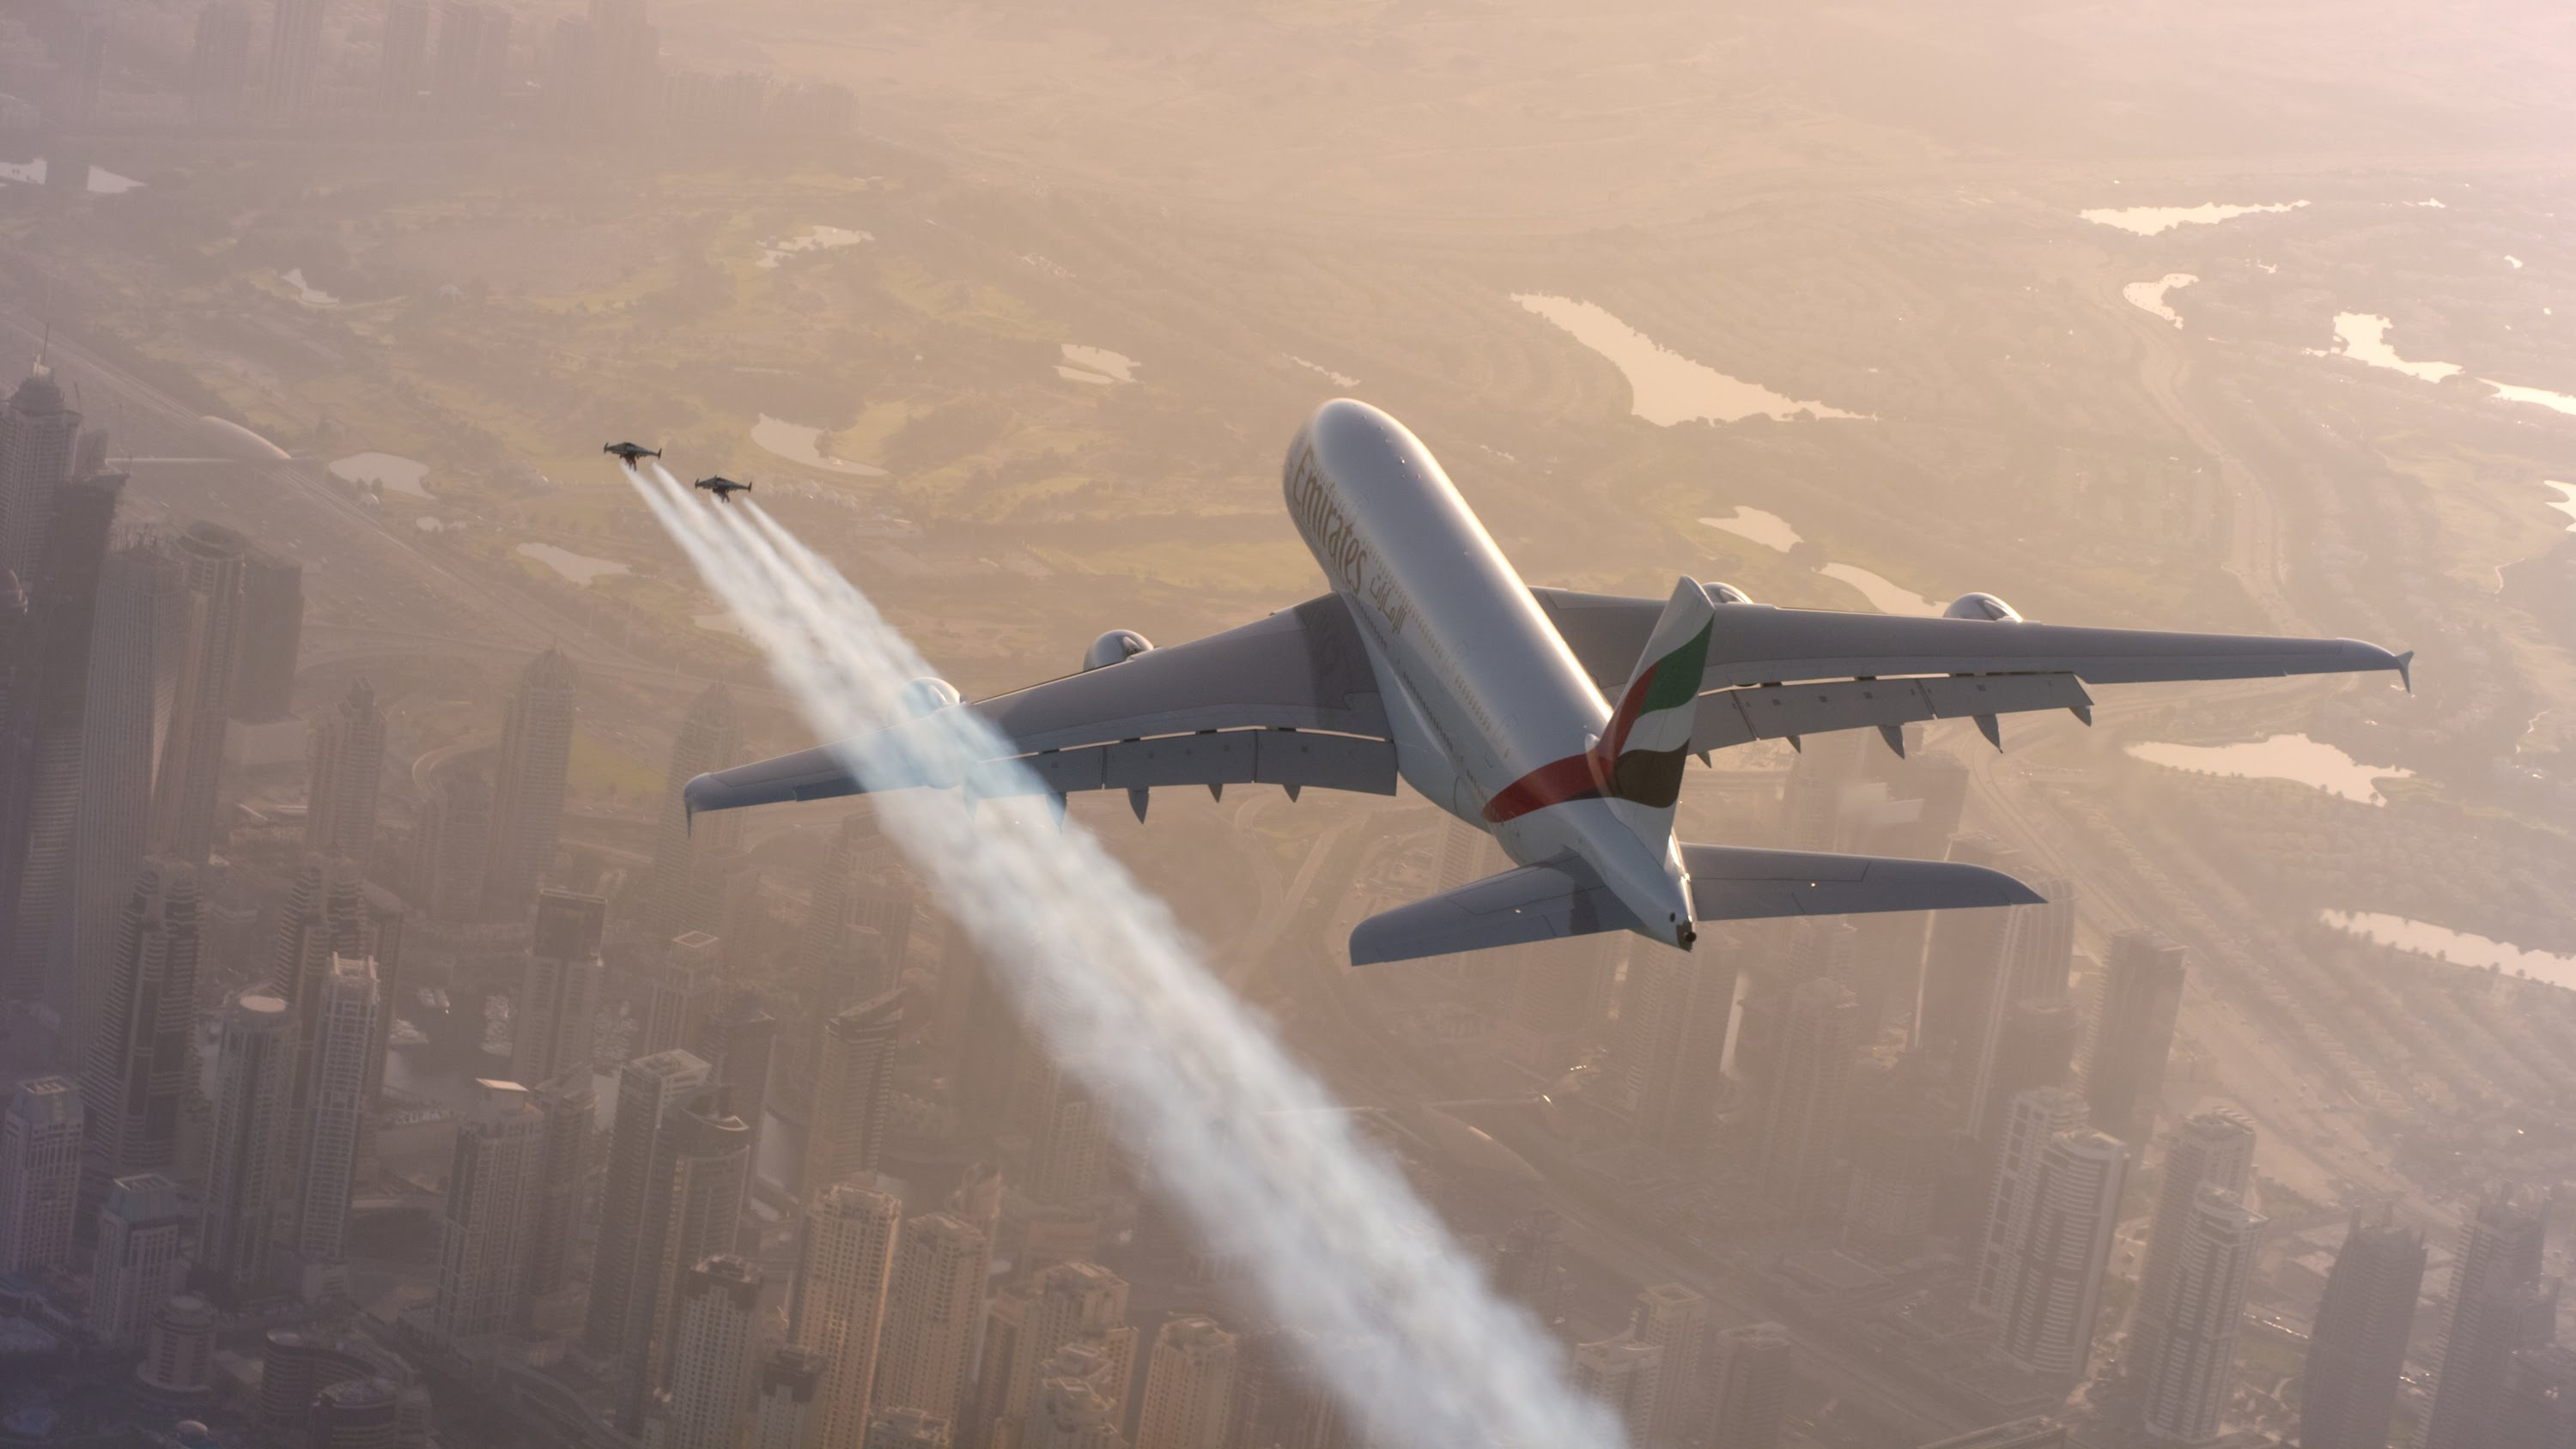 Awesome Jetman Dubai commercial